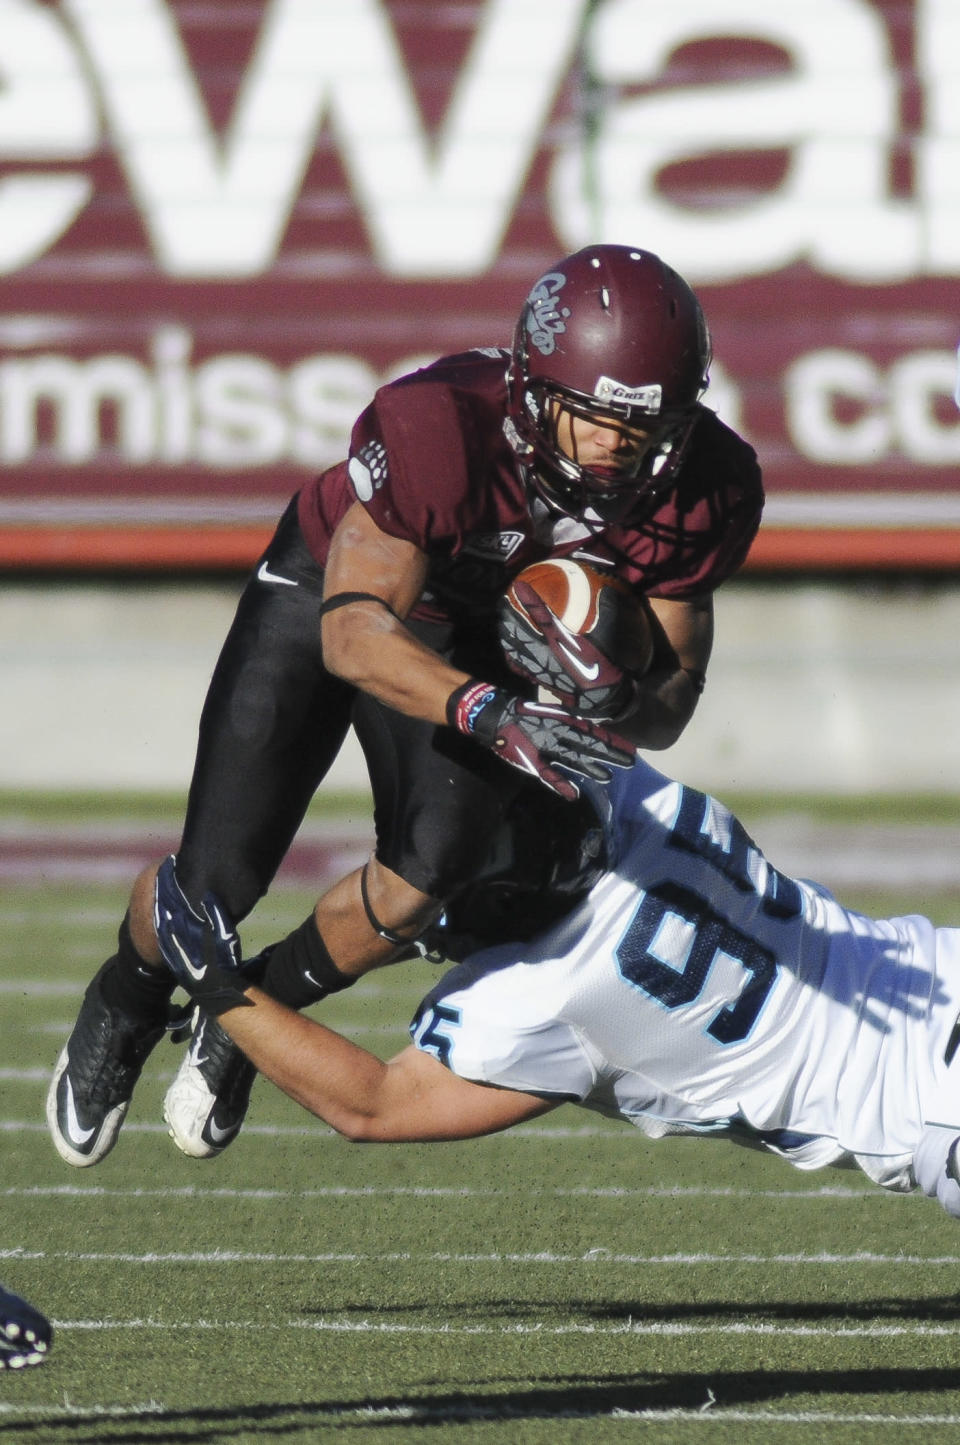 Montana running back Jordan Canada, top, is tripped by San Diego defensive lineman Jonathan Petersen (95) during the first half of an NCAA college football playoff game, Saturday, Nov. 29, 2014, in Missoula, Mont. (AP Photo/Lido Vizzutti)